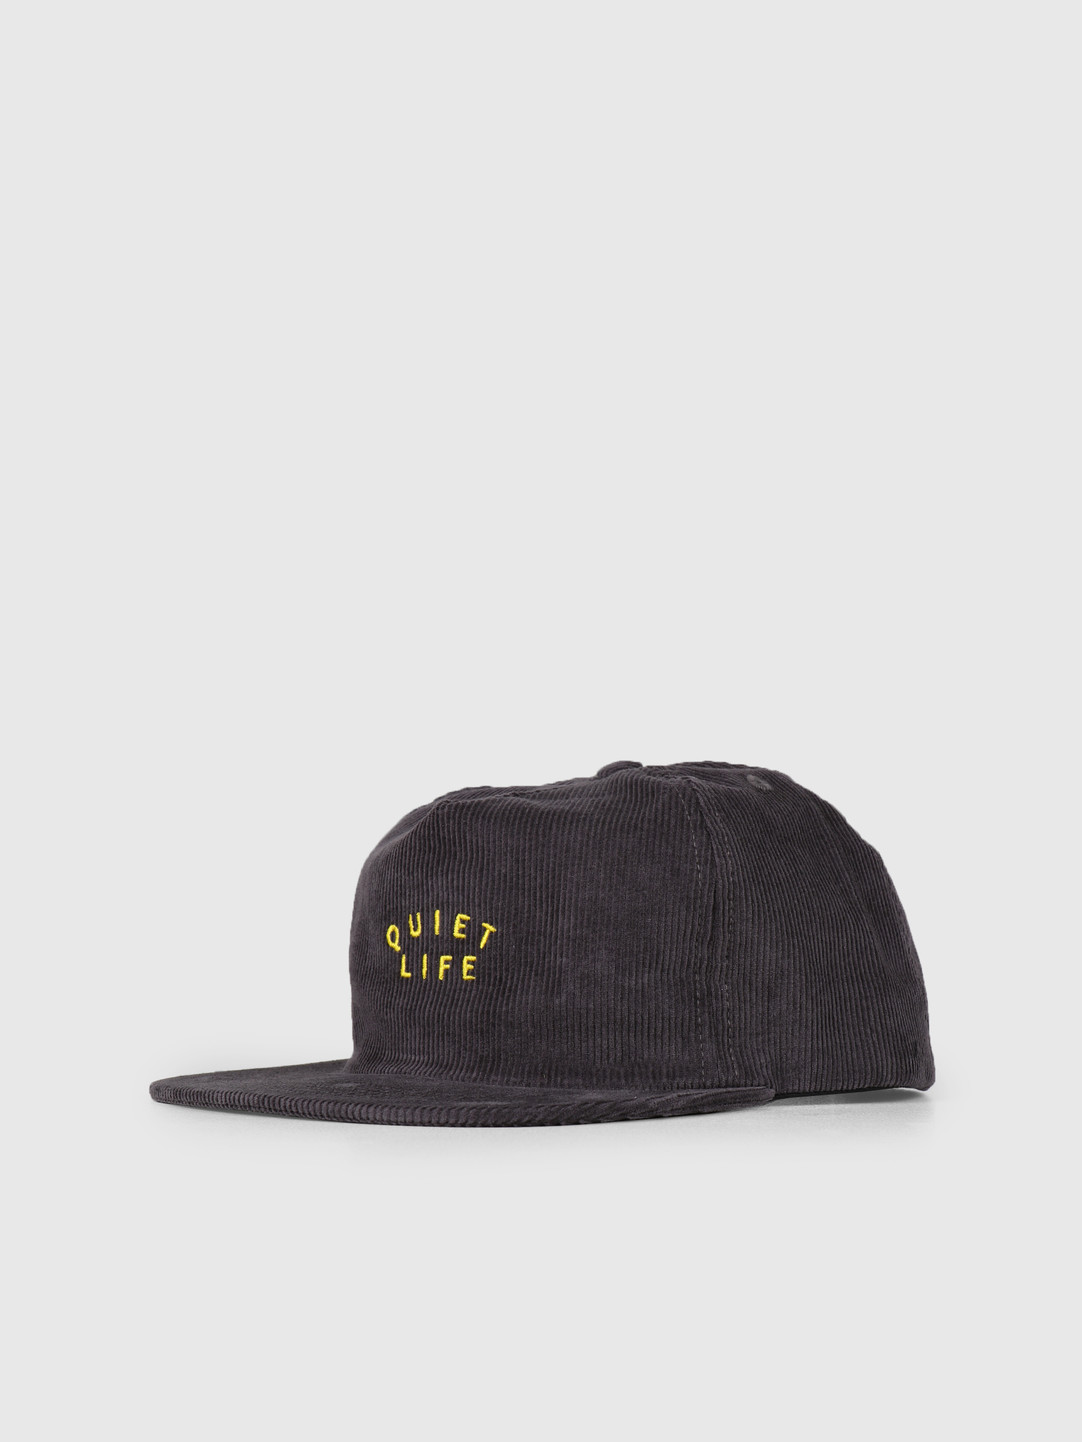 The Quiet Life The Quiet Life Standard Relaxed Snapback - USA Charcoal 19SPD1-1227-CHAR-OS